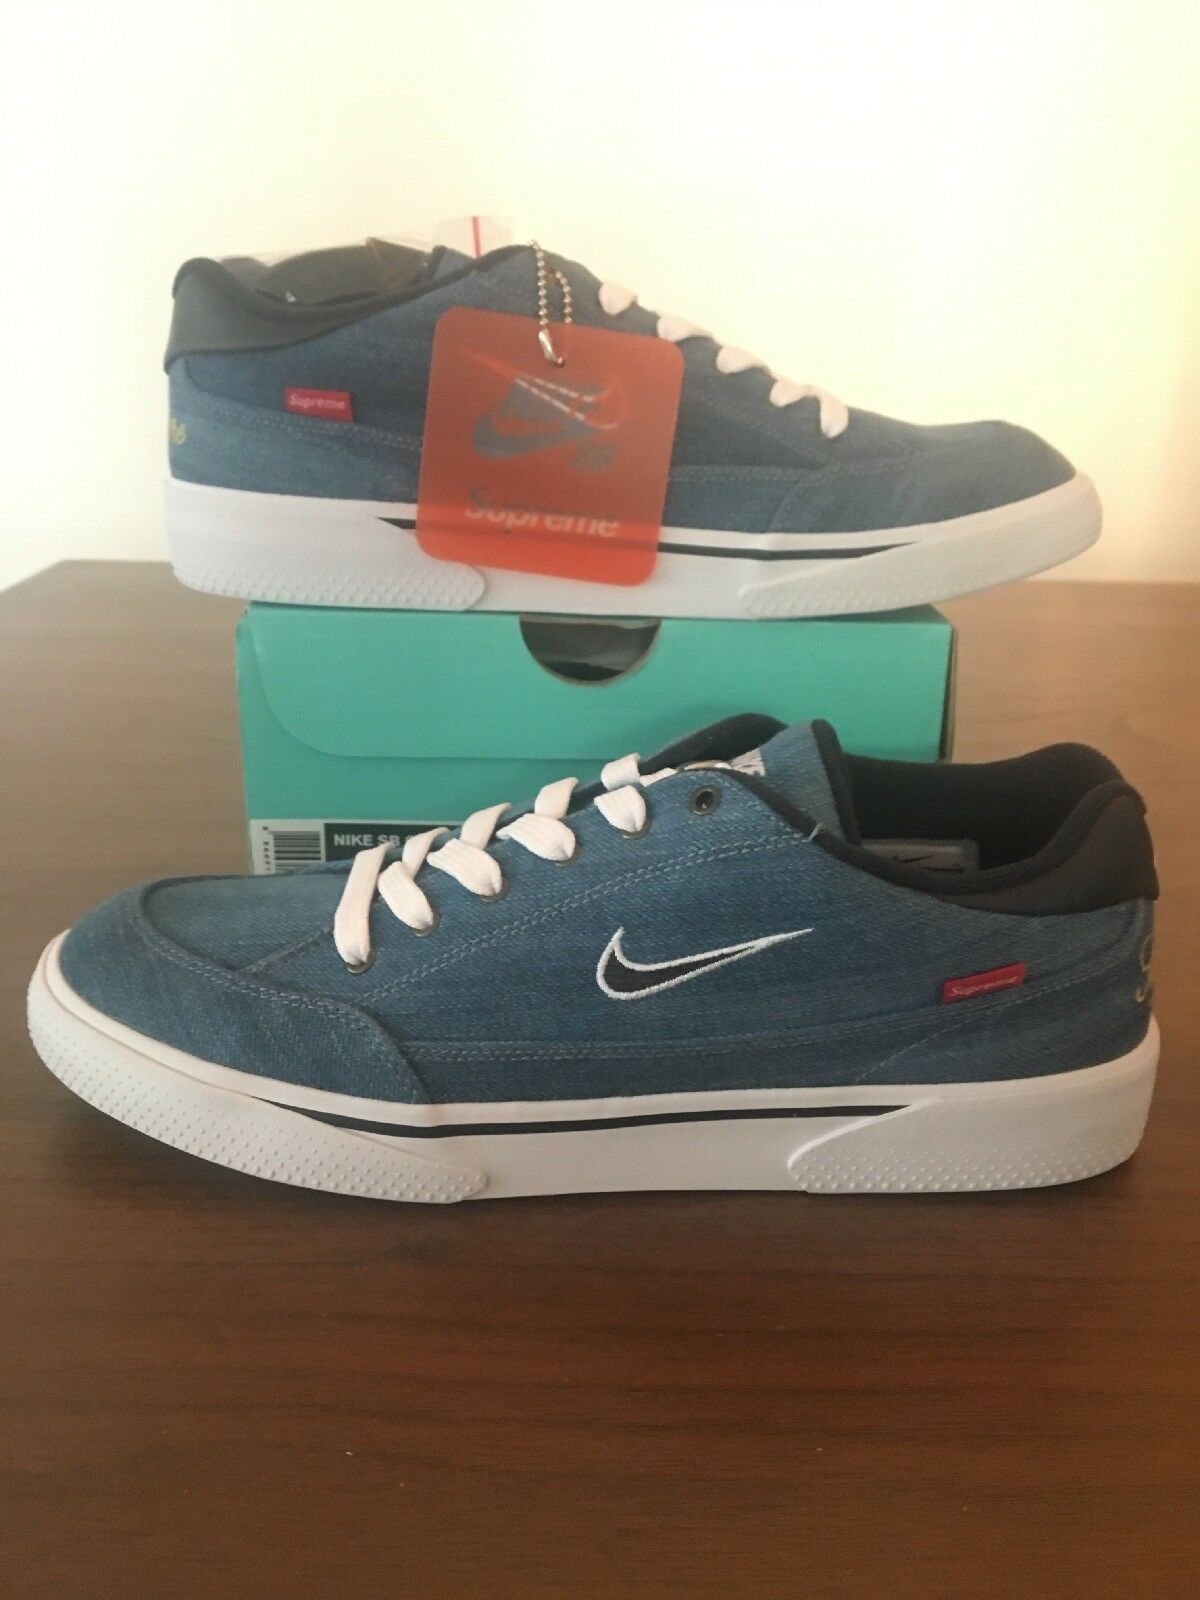 Nike SB GTS QS Supreme  - SIZE 9 NEW - 801621-441 White Obsidian bluee Denim